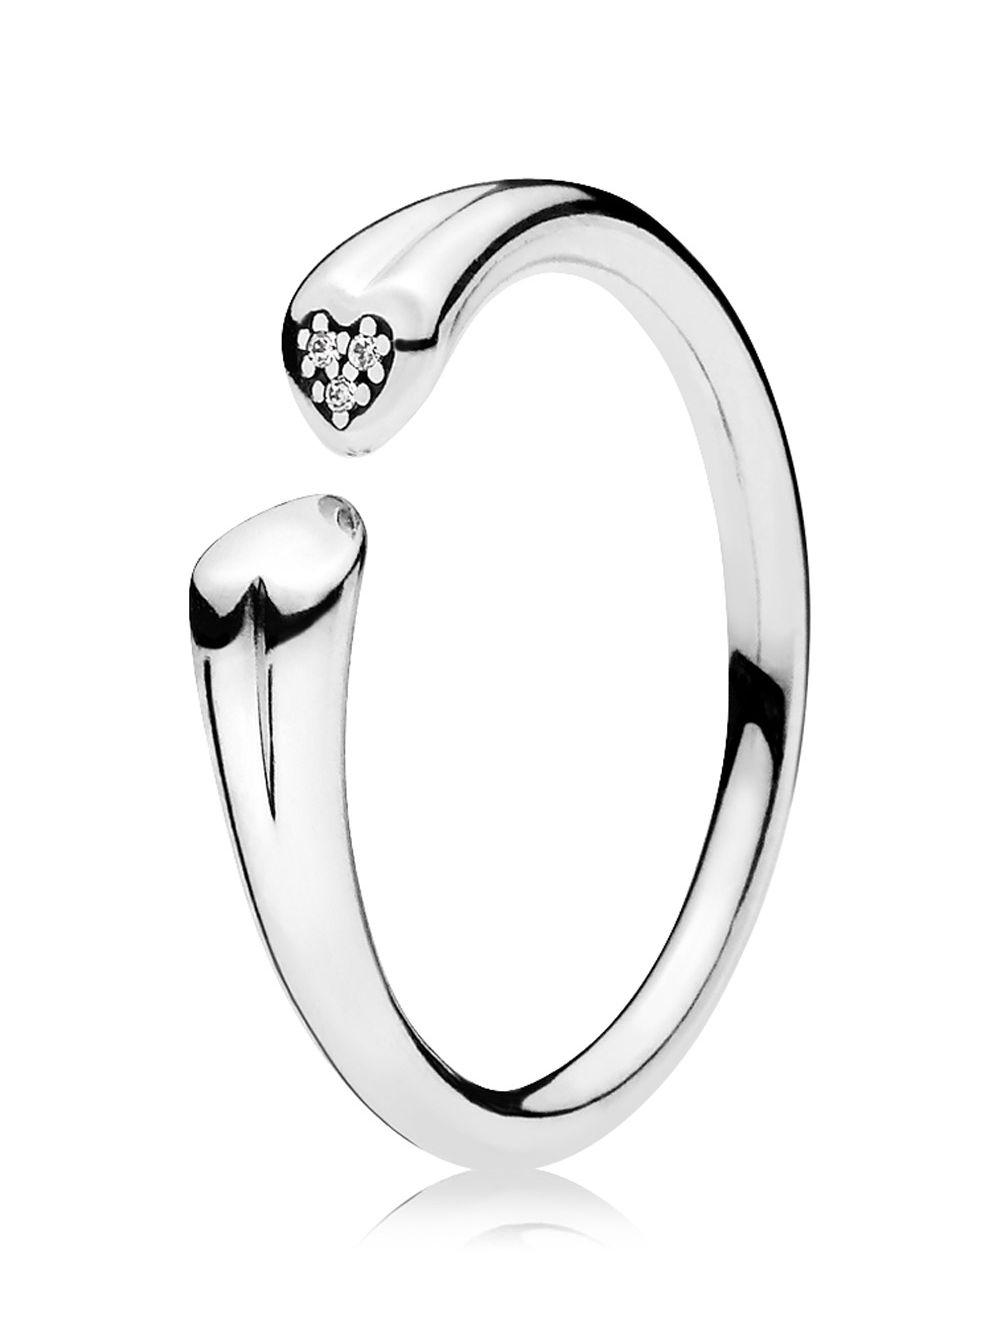 Pandora 196572cz Ladies Ring Two Hearts Pertaining To Most Recently Released Pandora Logo & Hearts Rings (View 12 of 25)